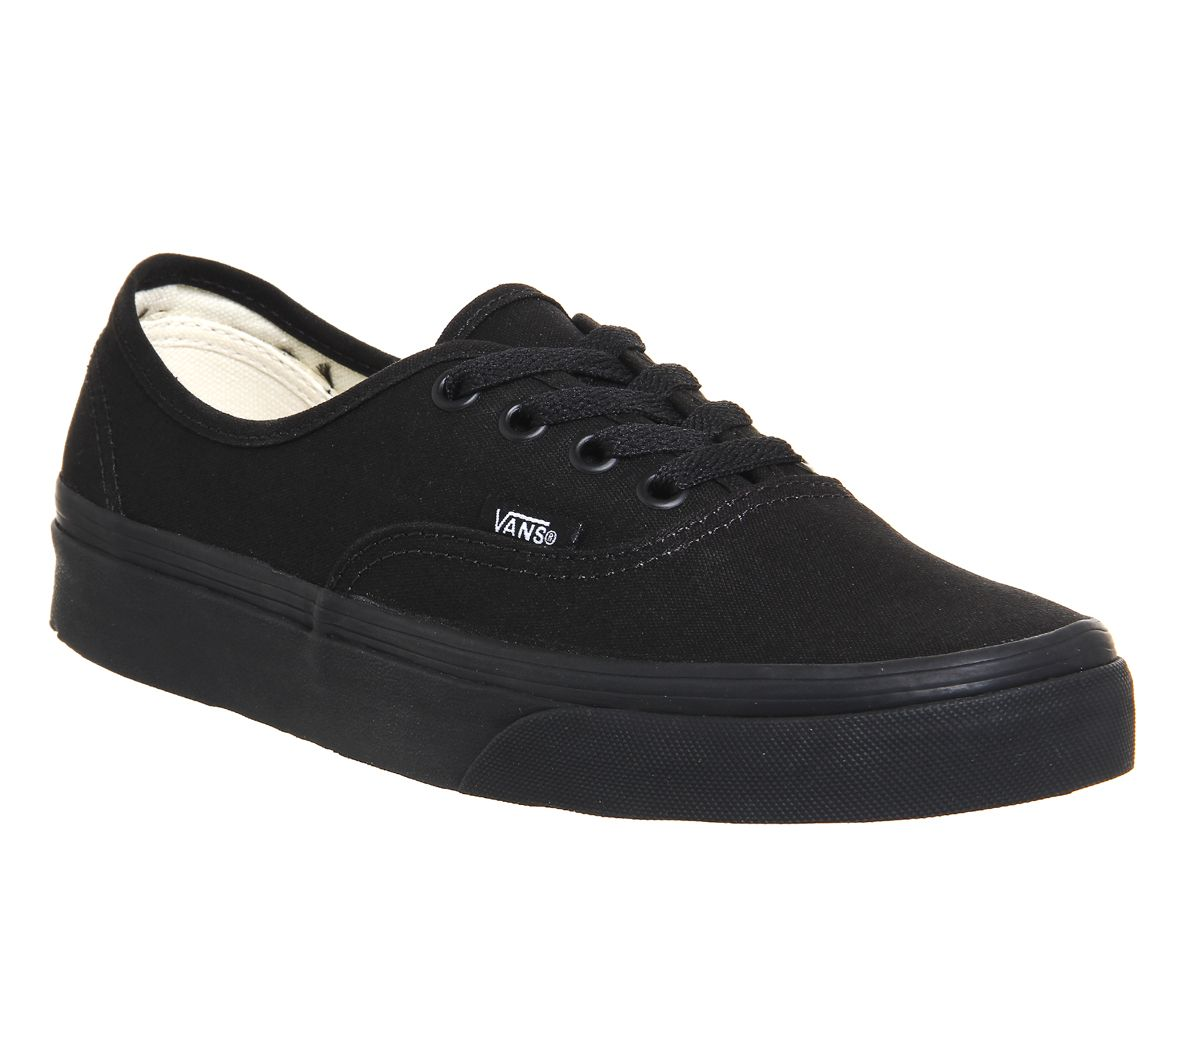 4f1d1ae00c32 Vans Authentic Black Mono - Unisex Sports